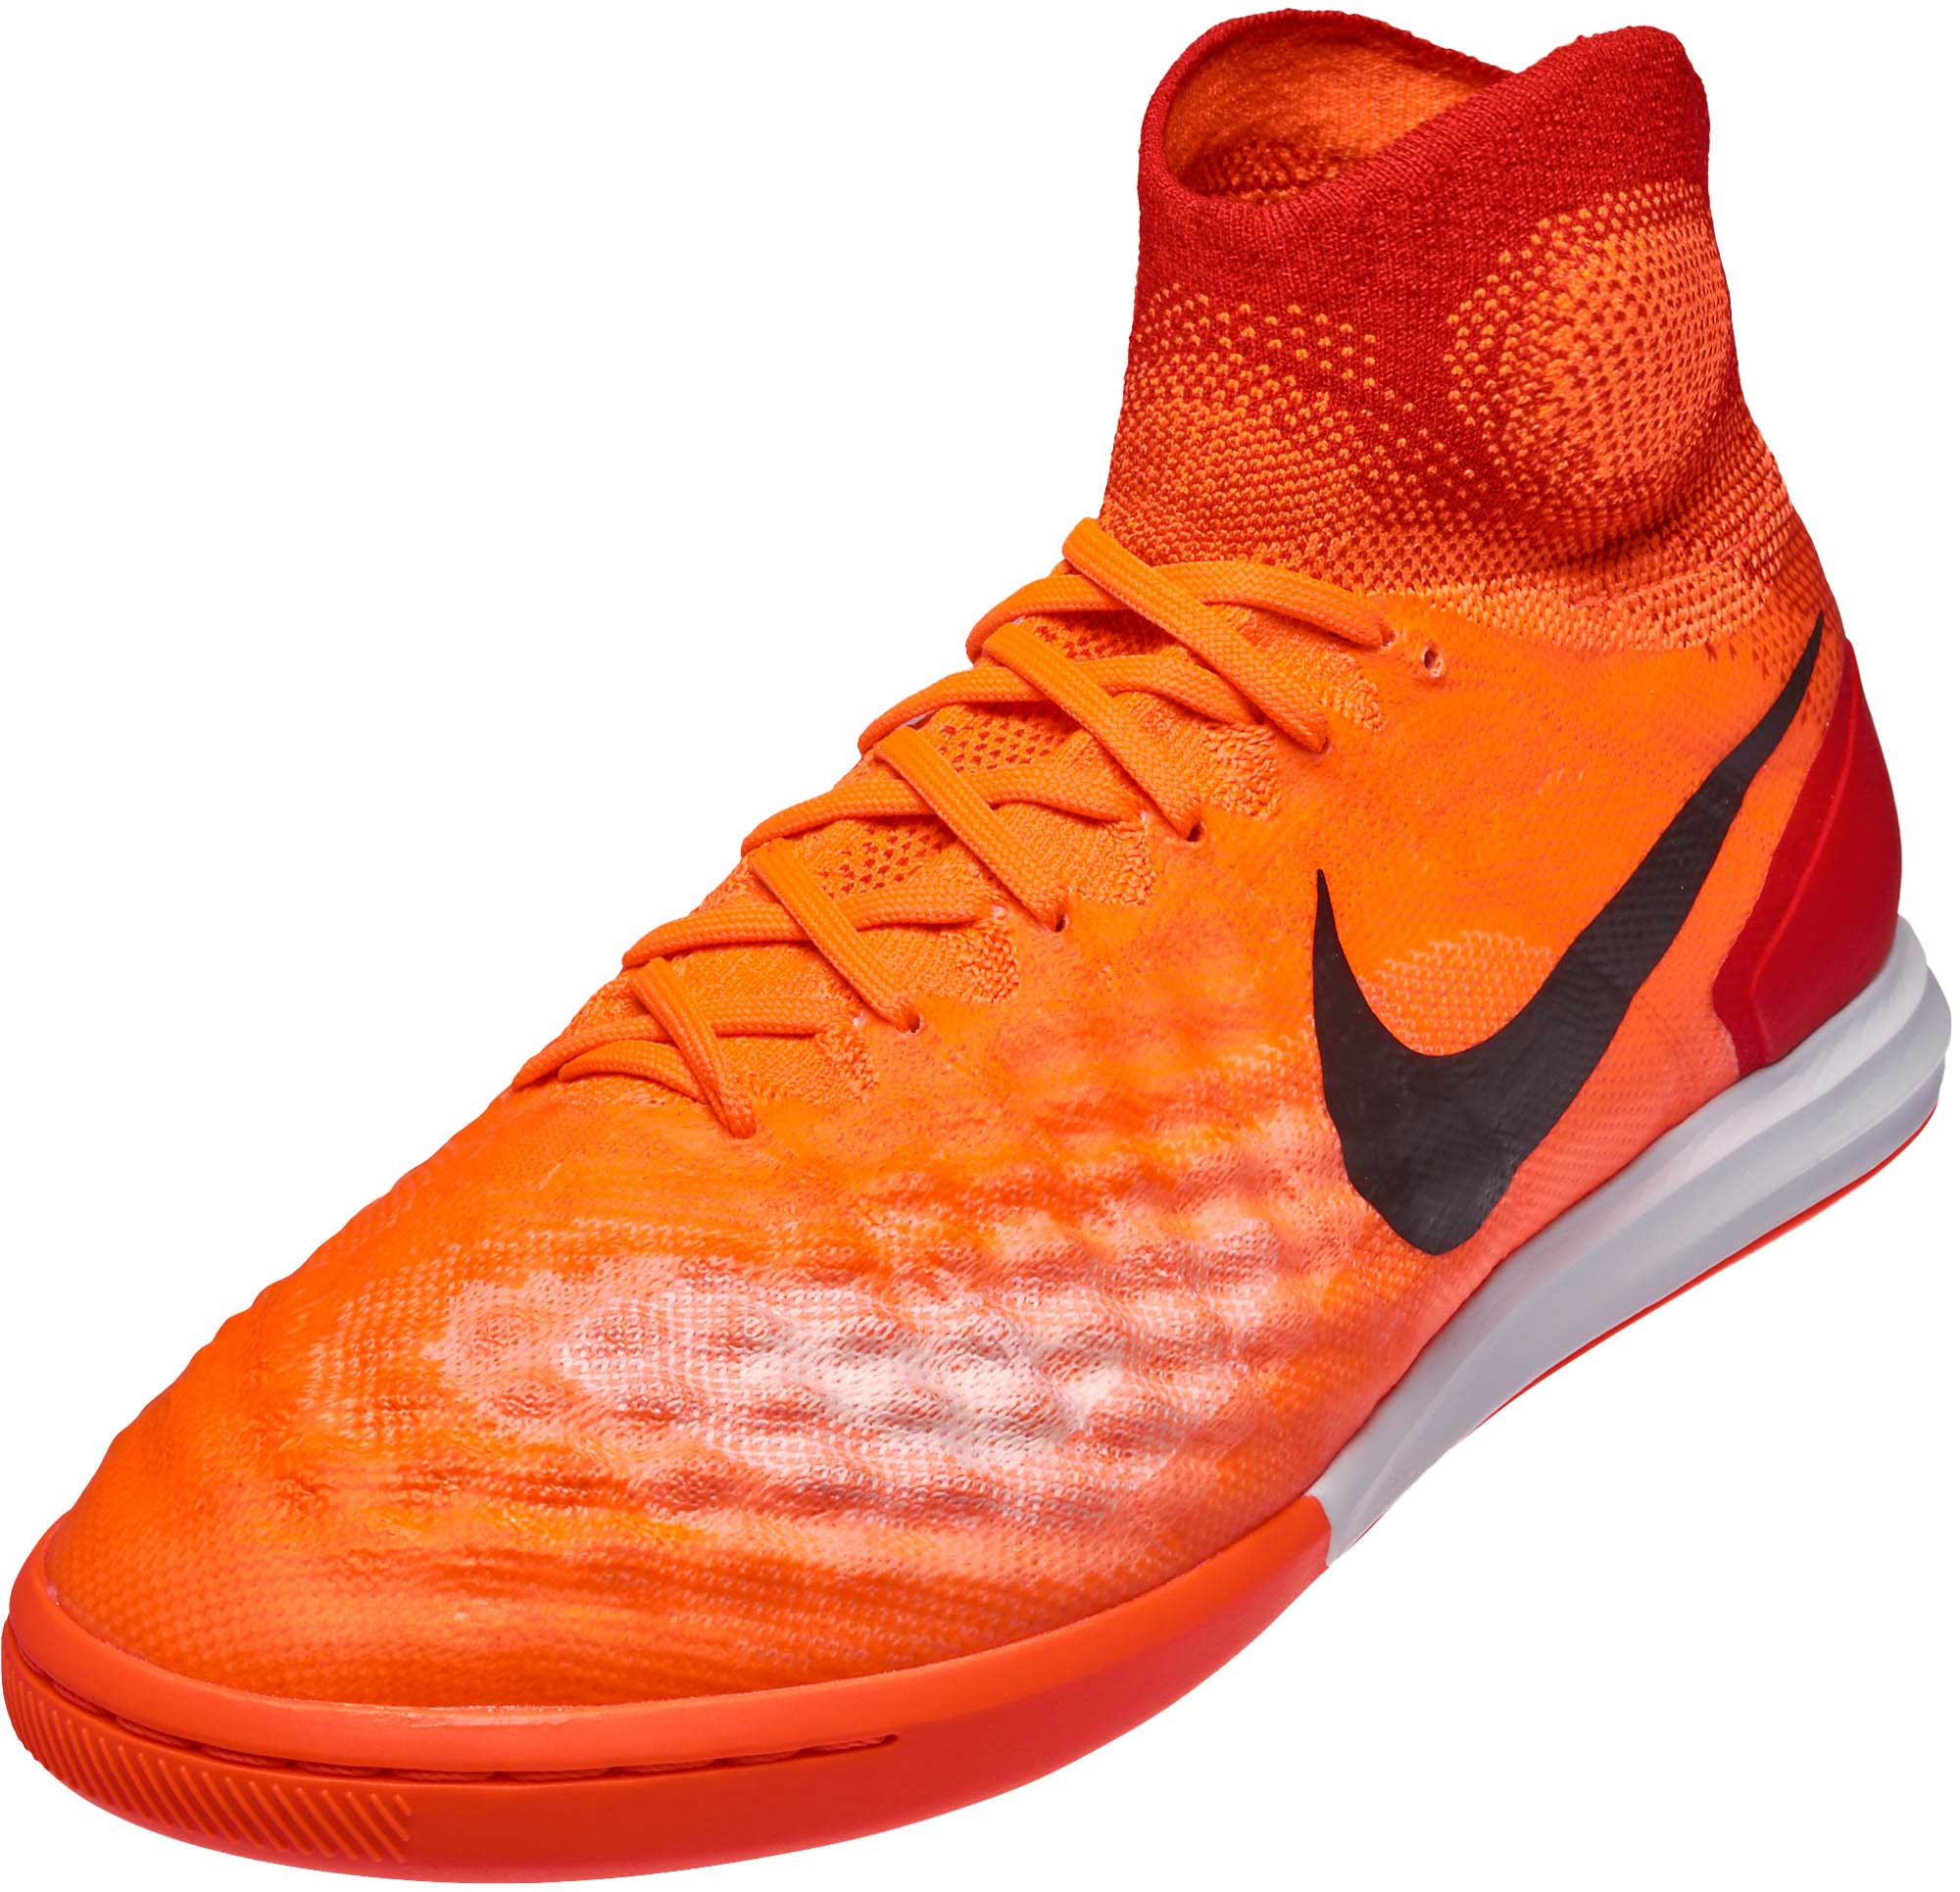 094cb7326a90 Nike MagistaX Proximo II IC – Total Crimson University Red